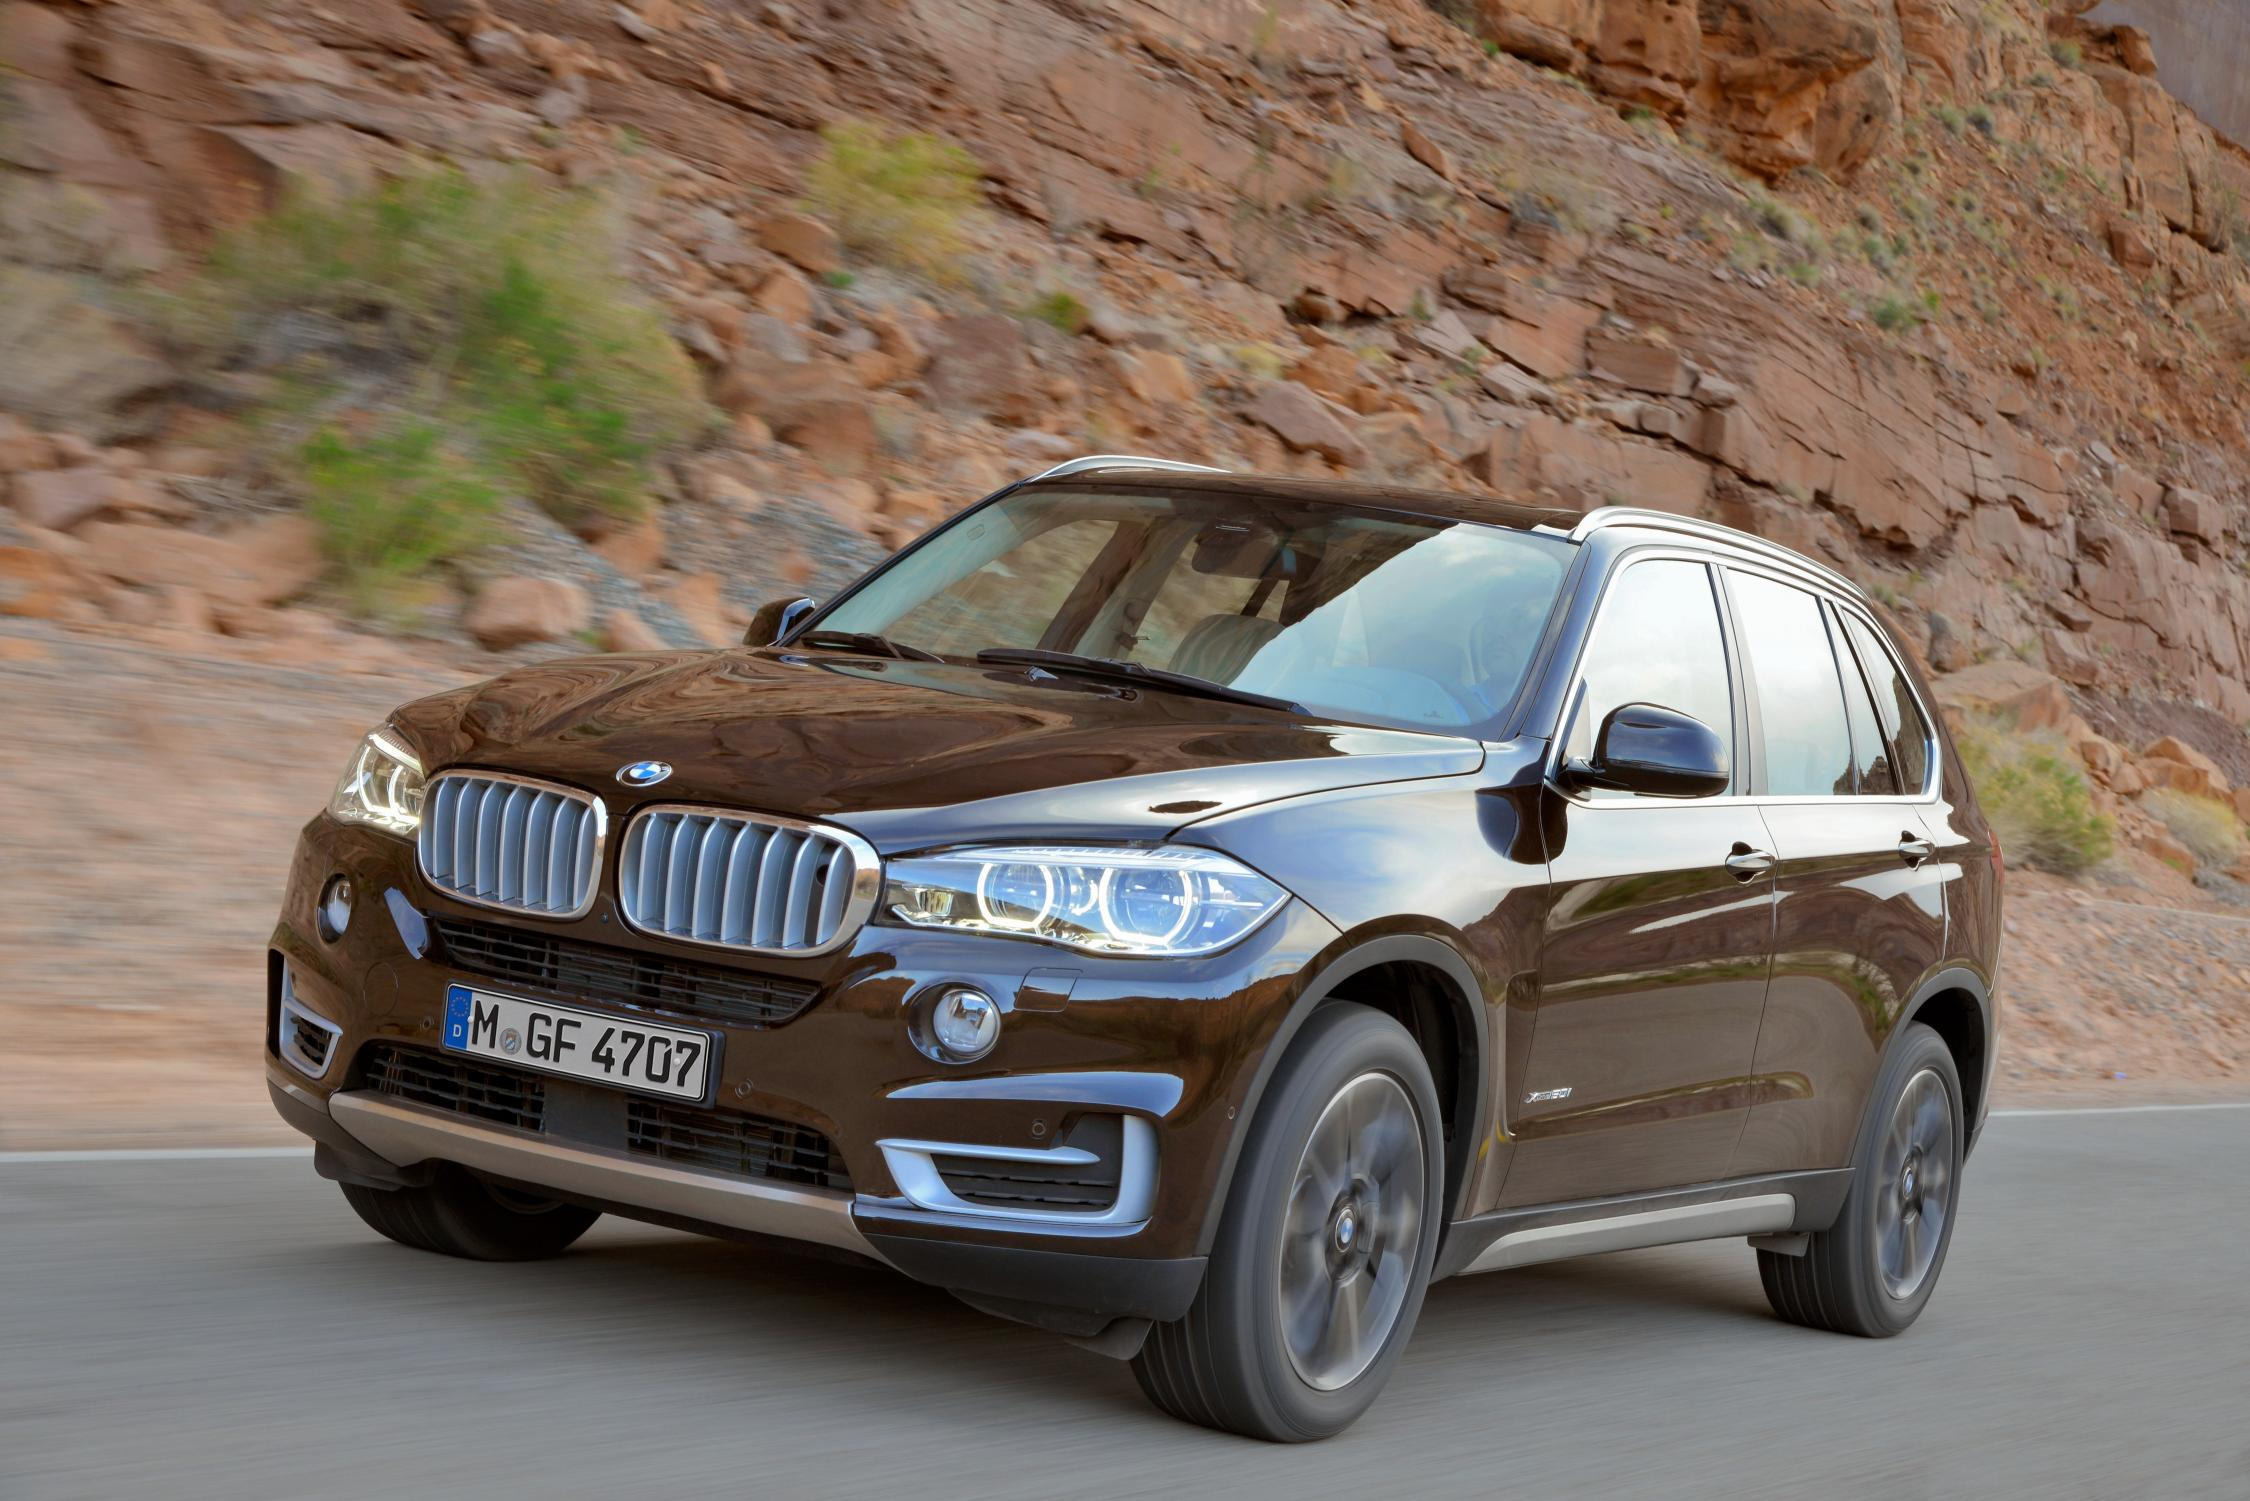 New 2015 BMW X5 launching soon